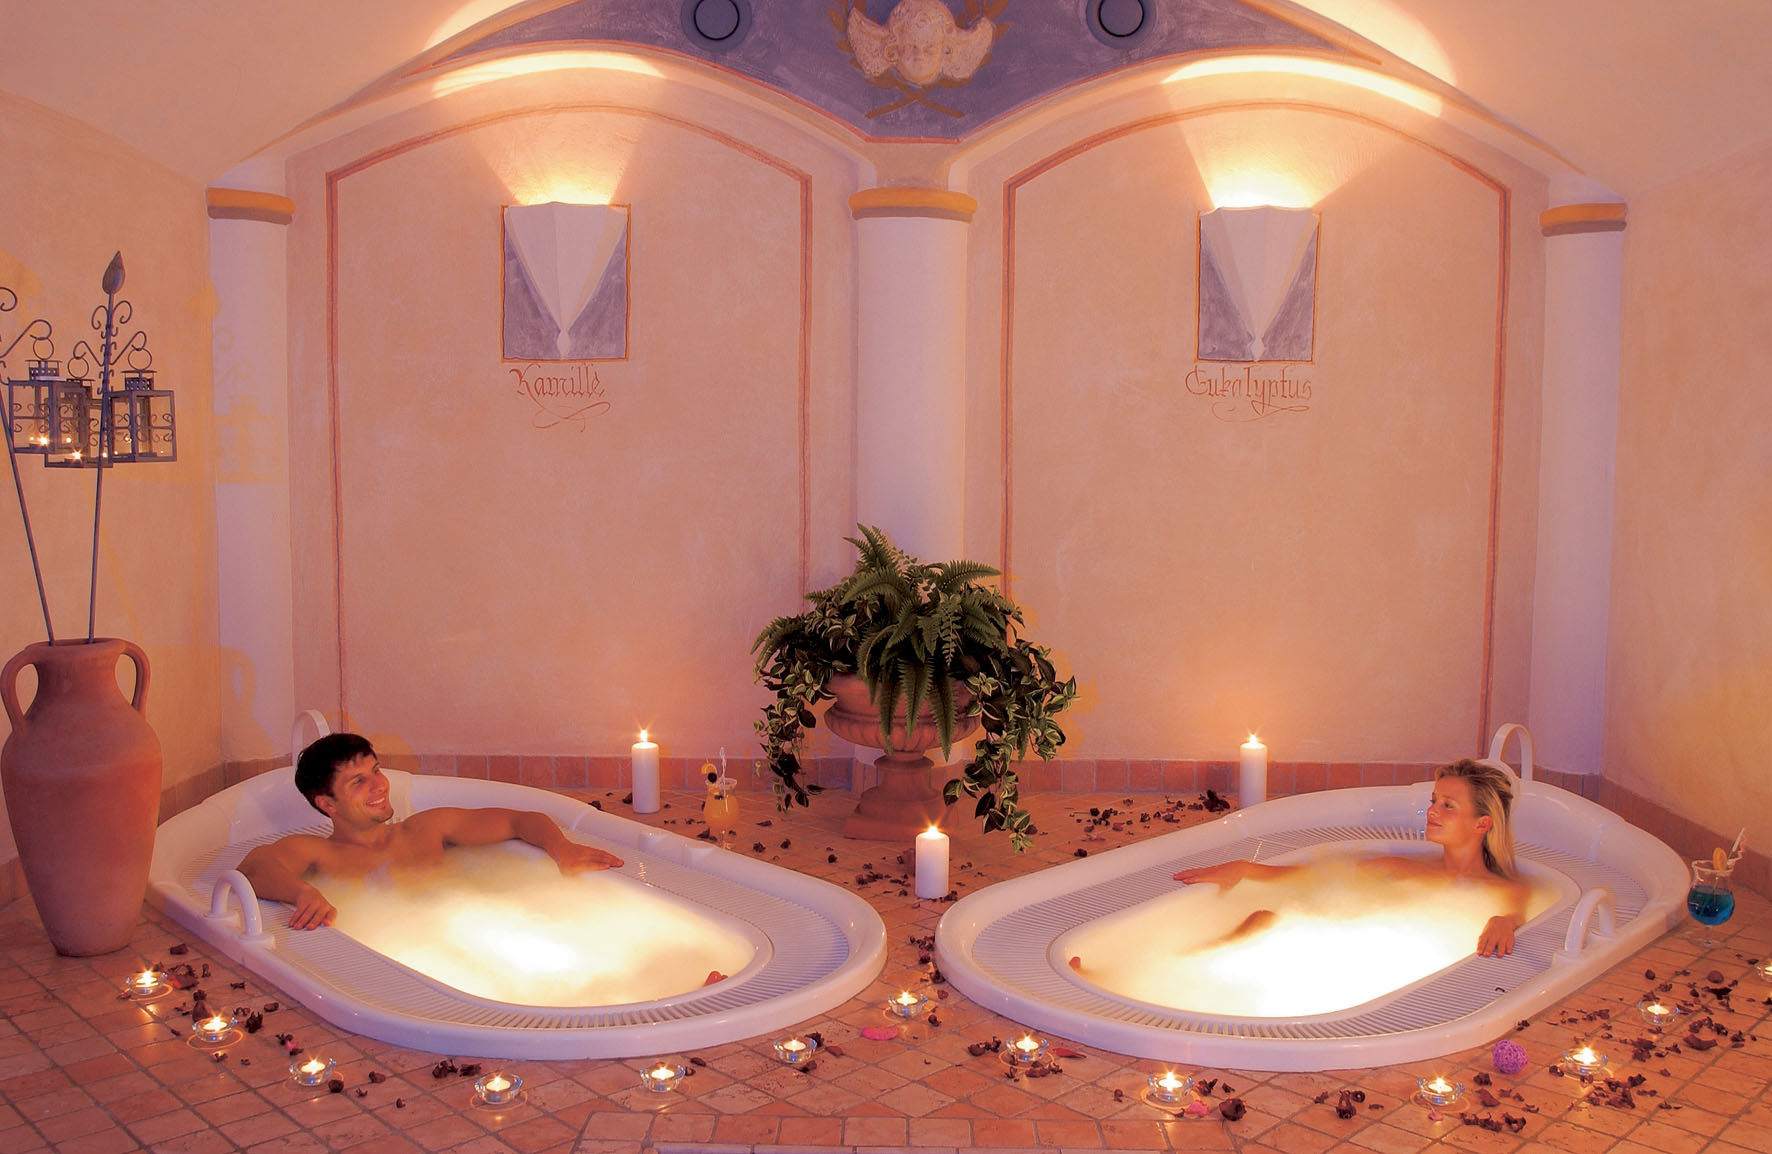 Weekend romantico due cuori e una SPA *FullTravel.it